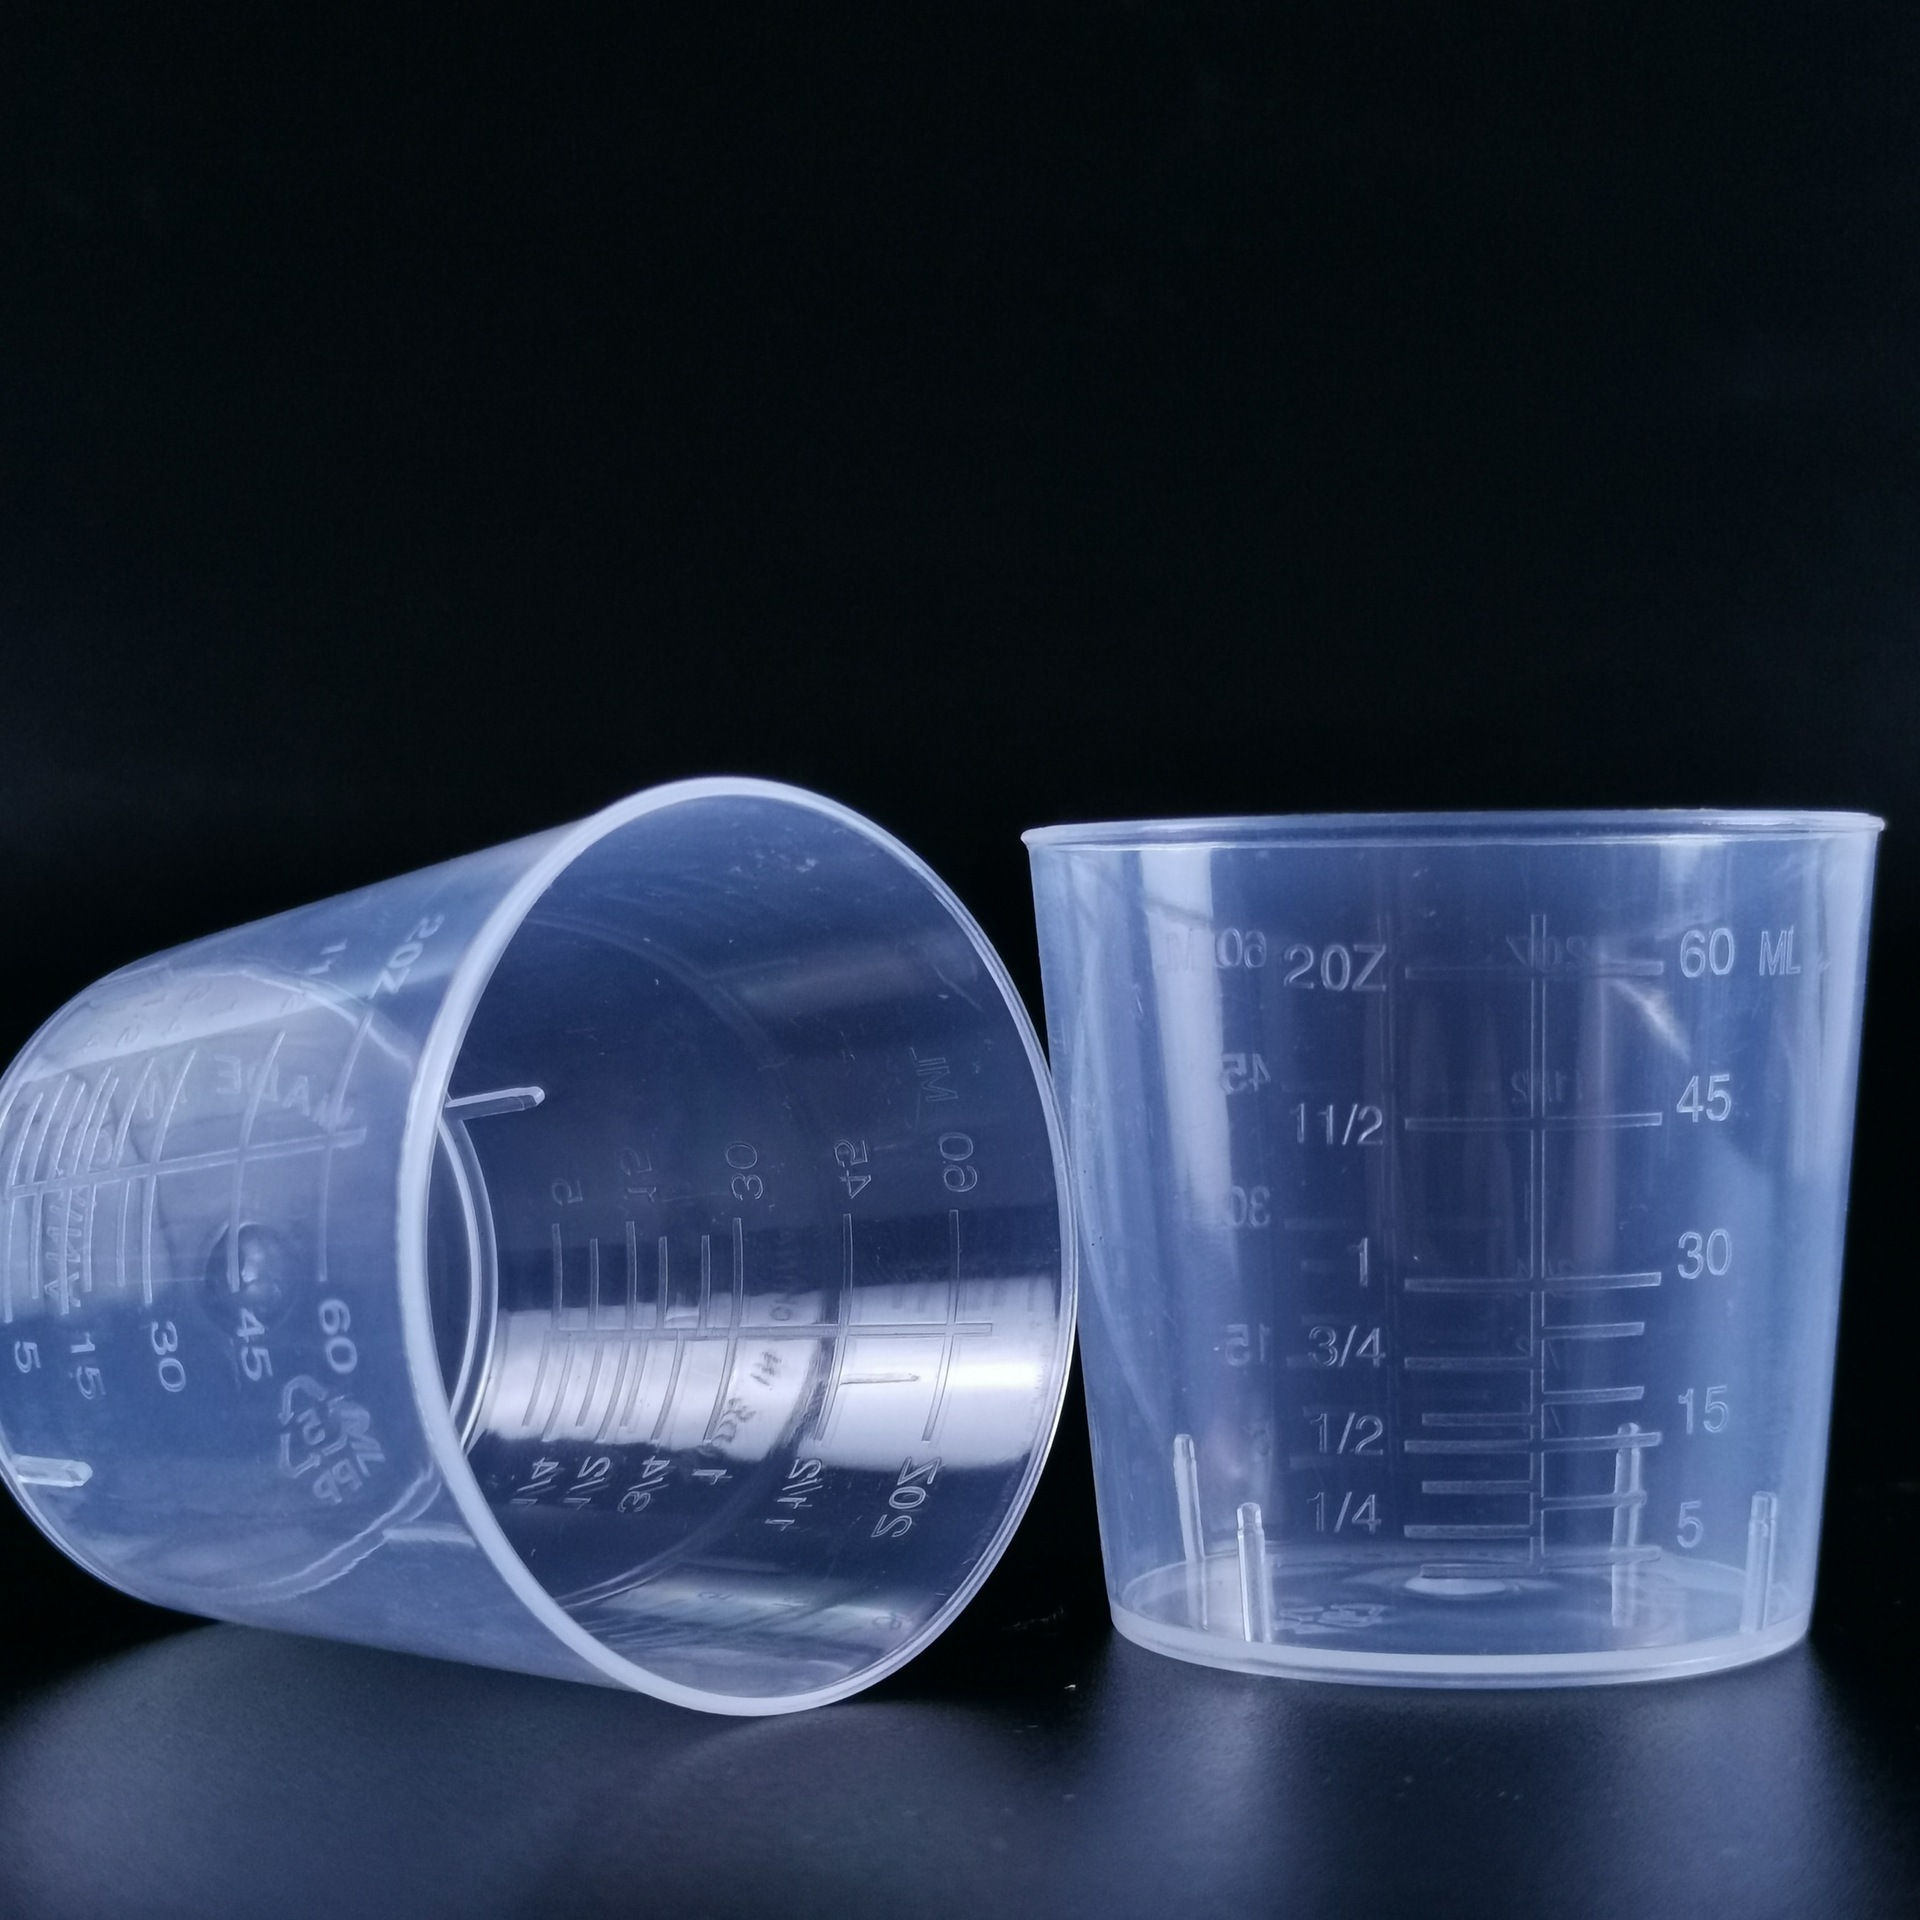 DACHEN 60 ml measuring cup plastic measuring cup laboratory utensils 60 ml measuring cup